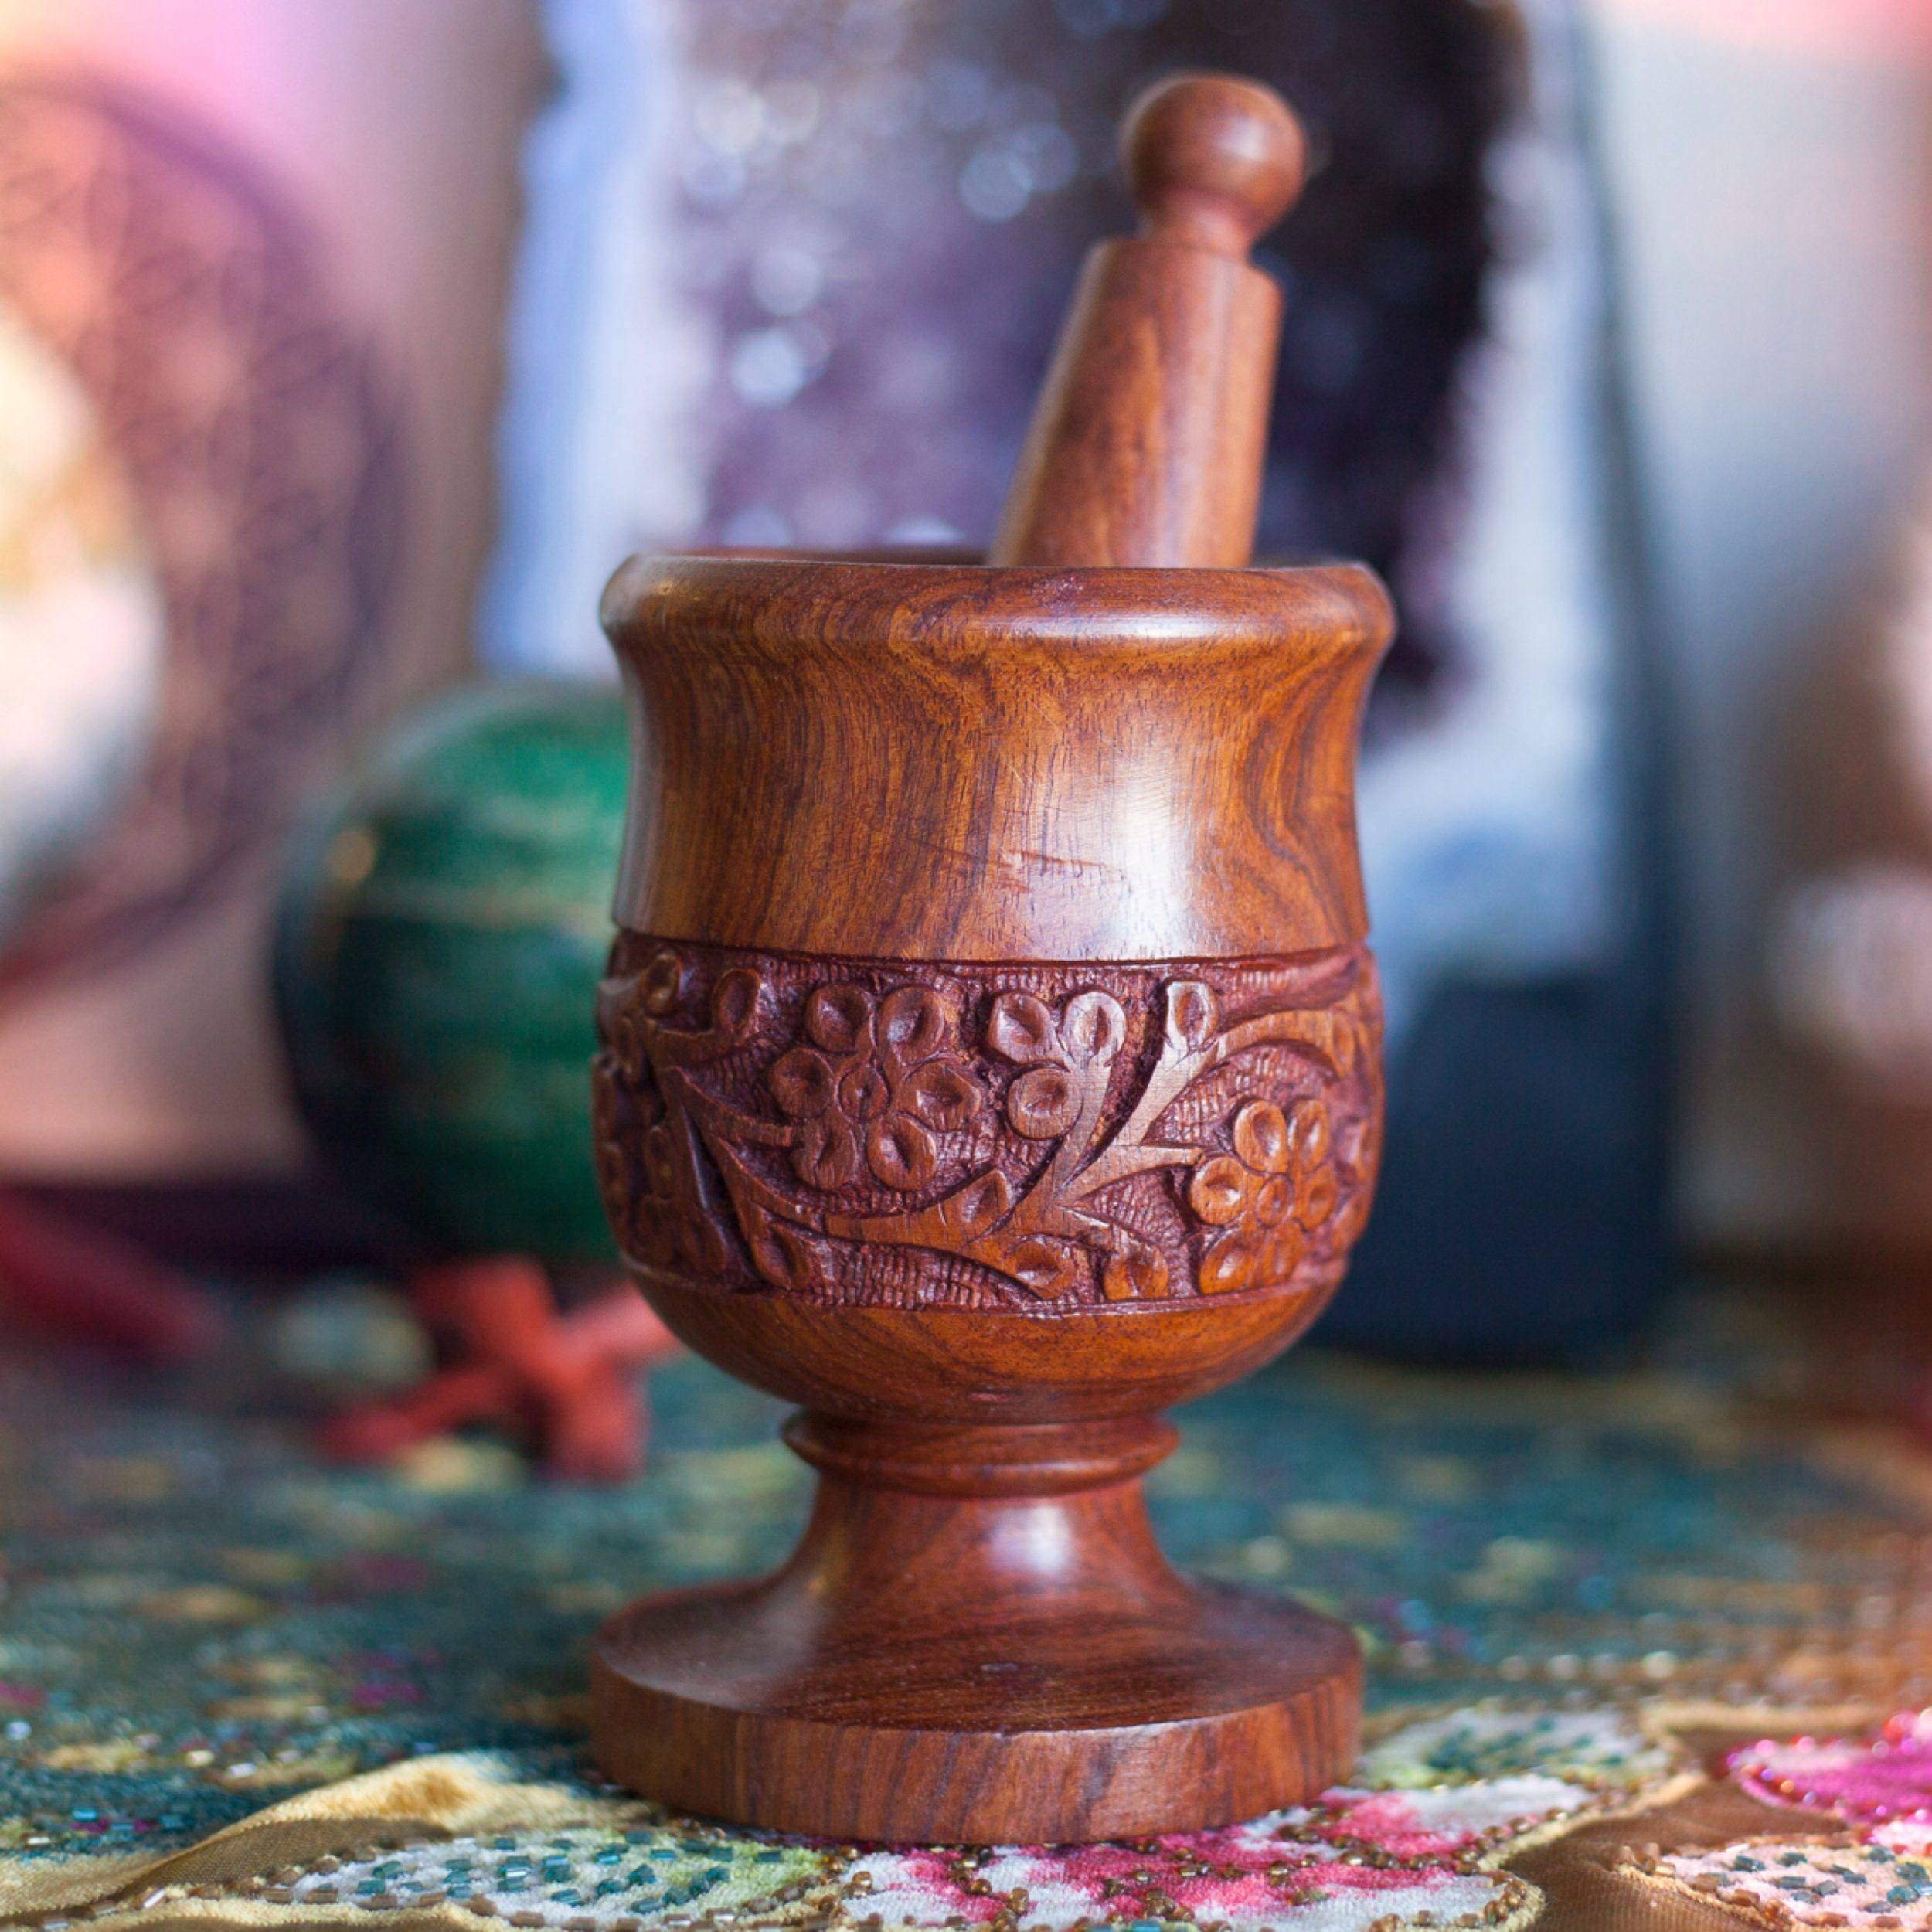 Wooden_Carved_Mortar_and_Pestle_1of3_11_6